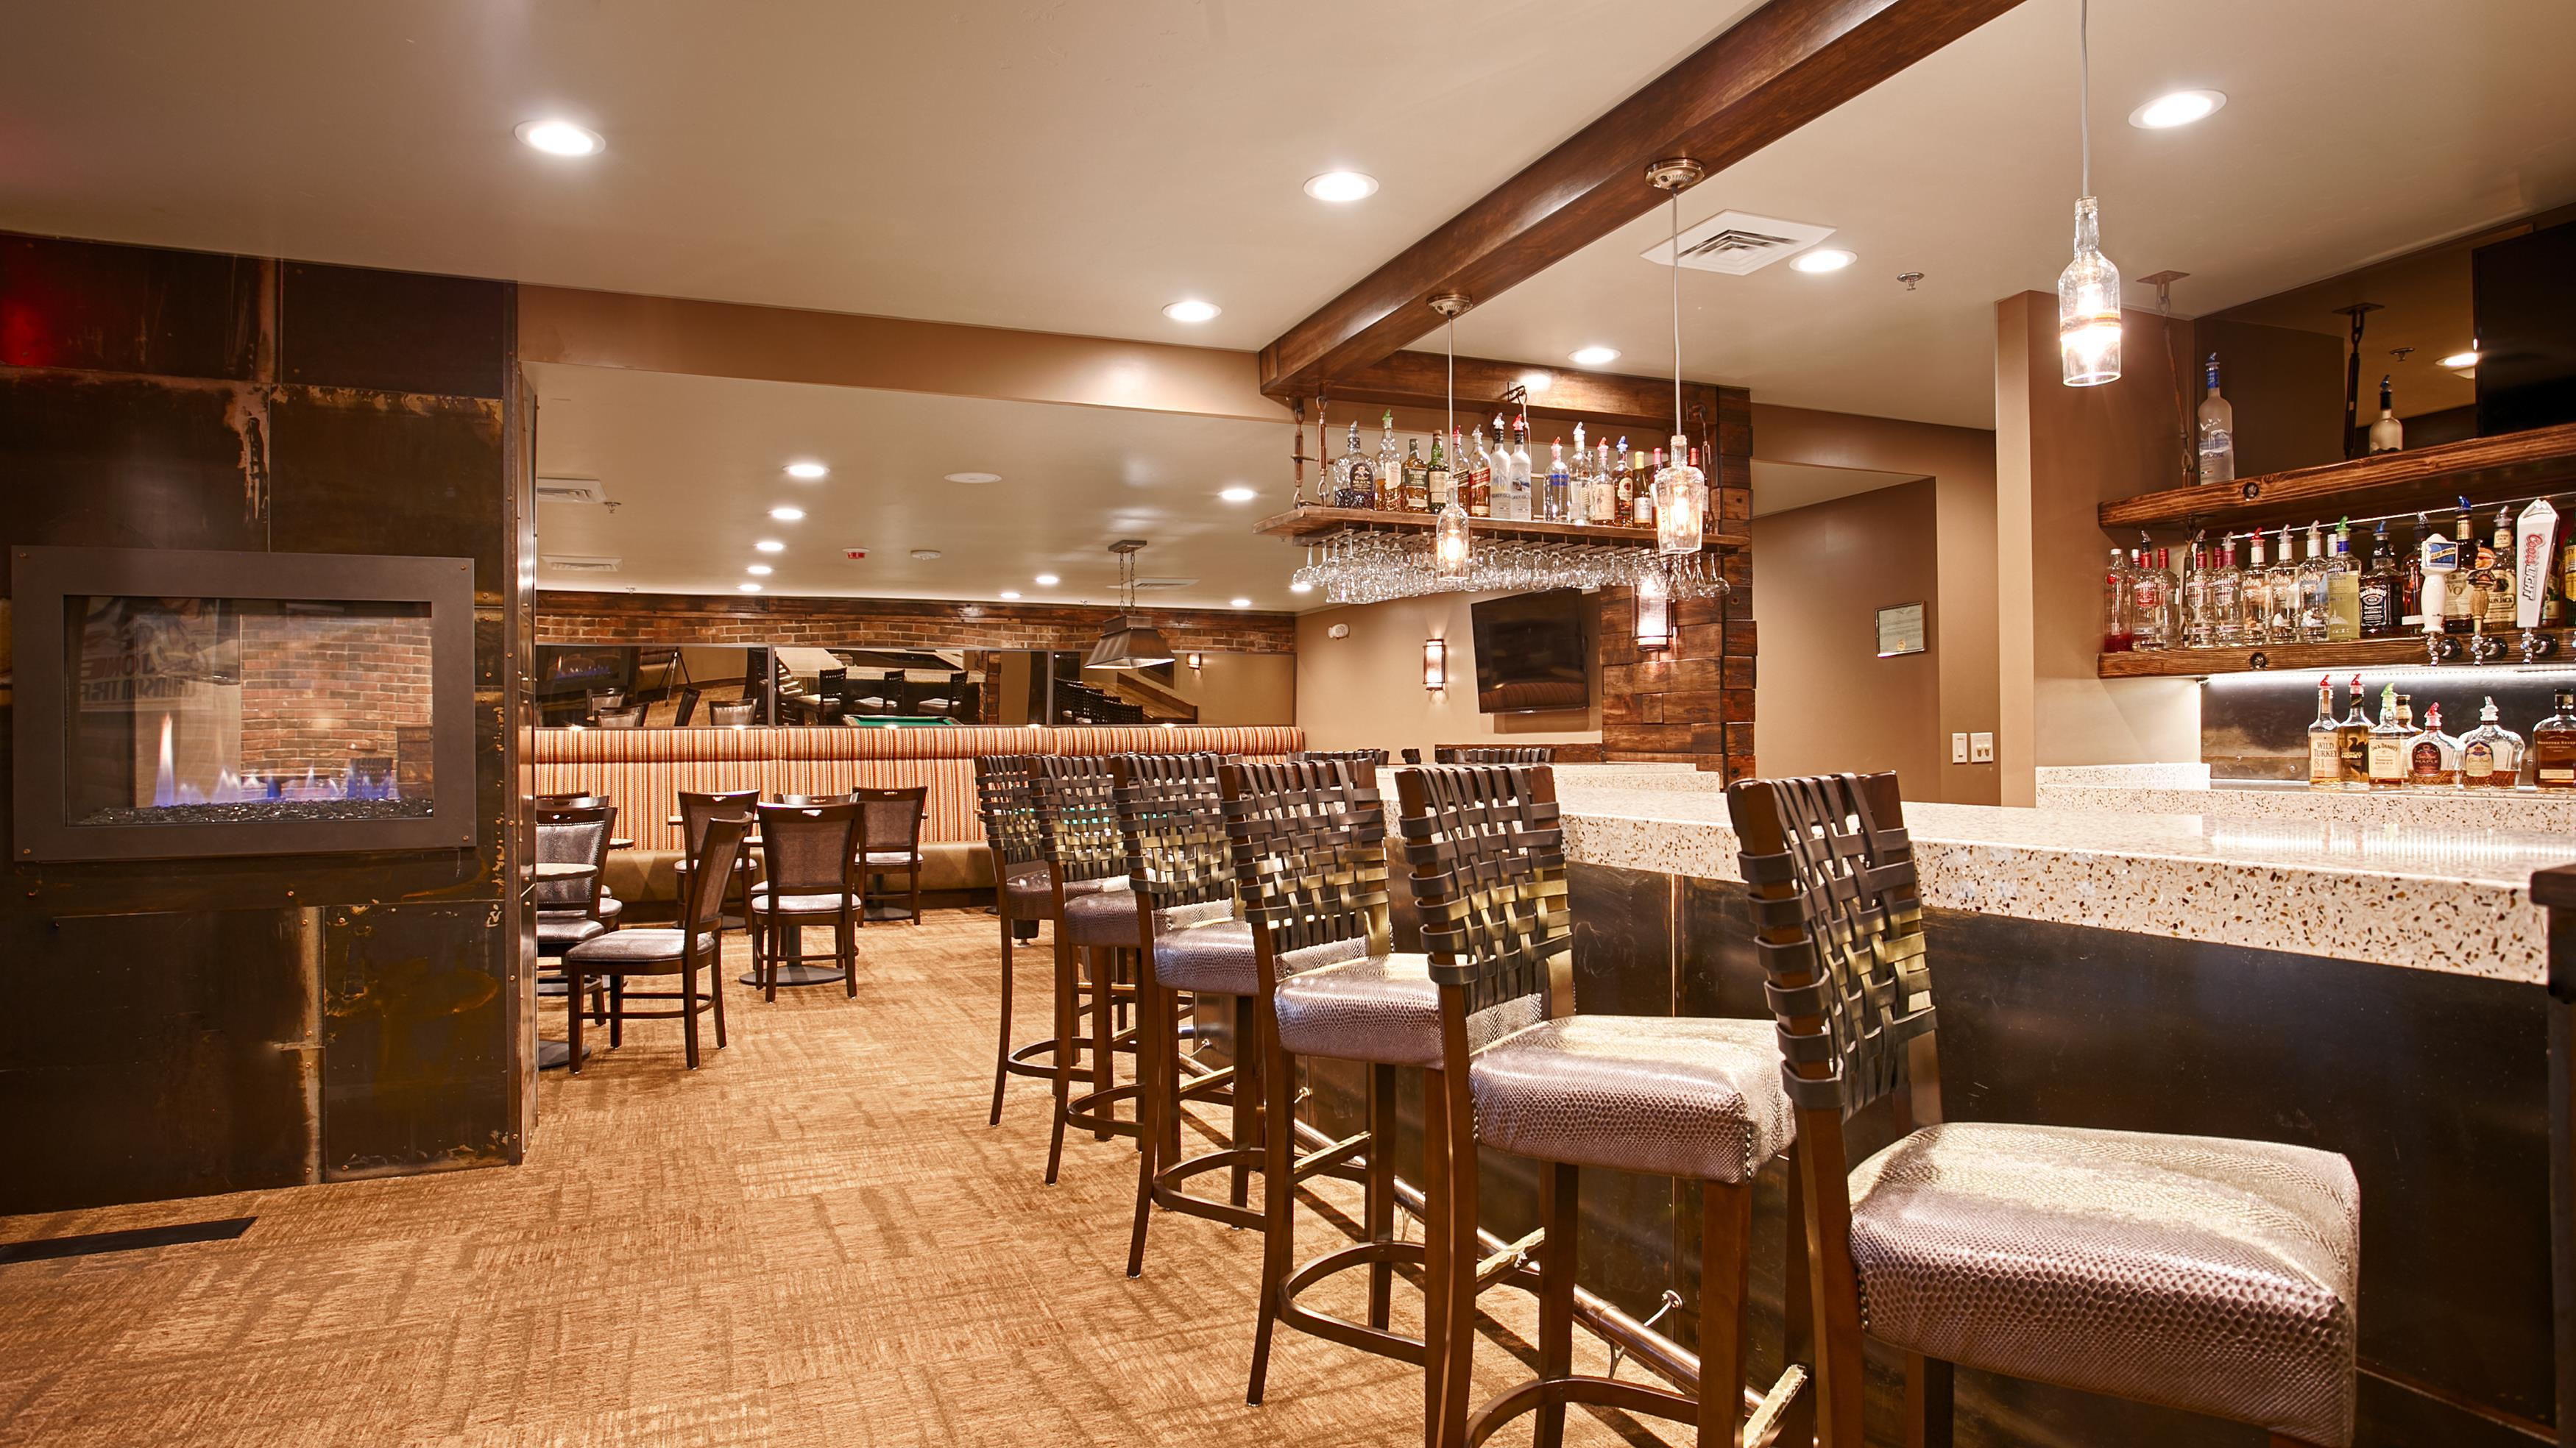 Best western cottontree inn in rawlins wy whitepages for Anong thai cuisine chicago il